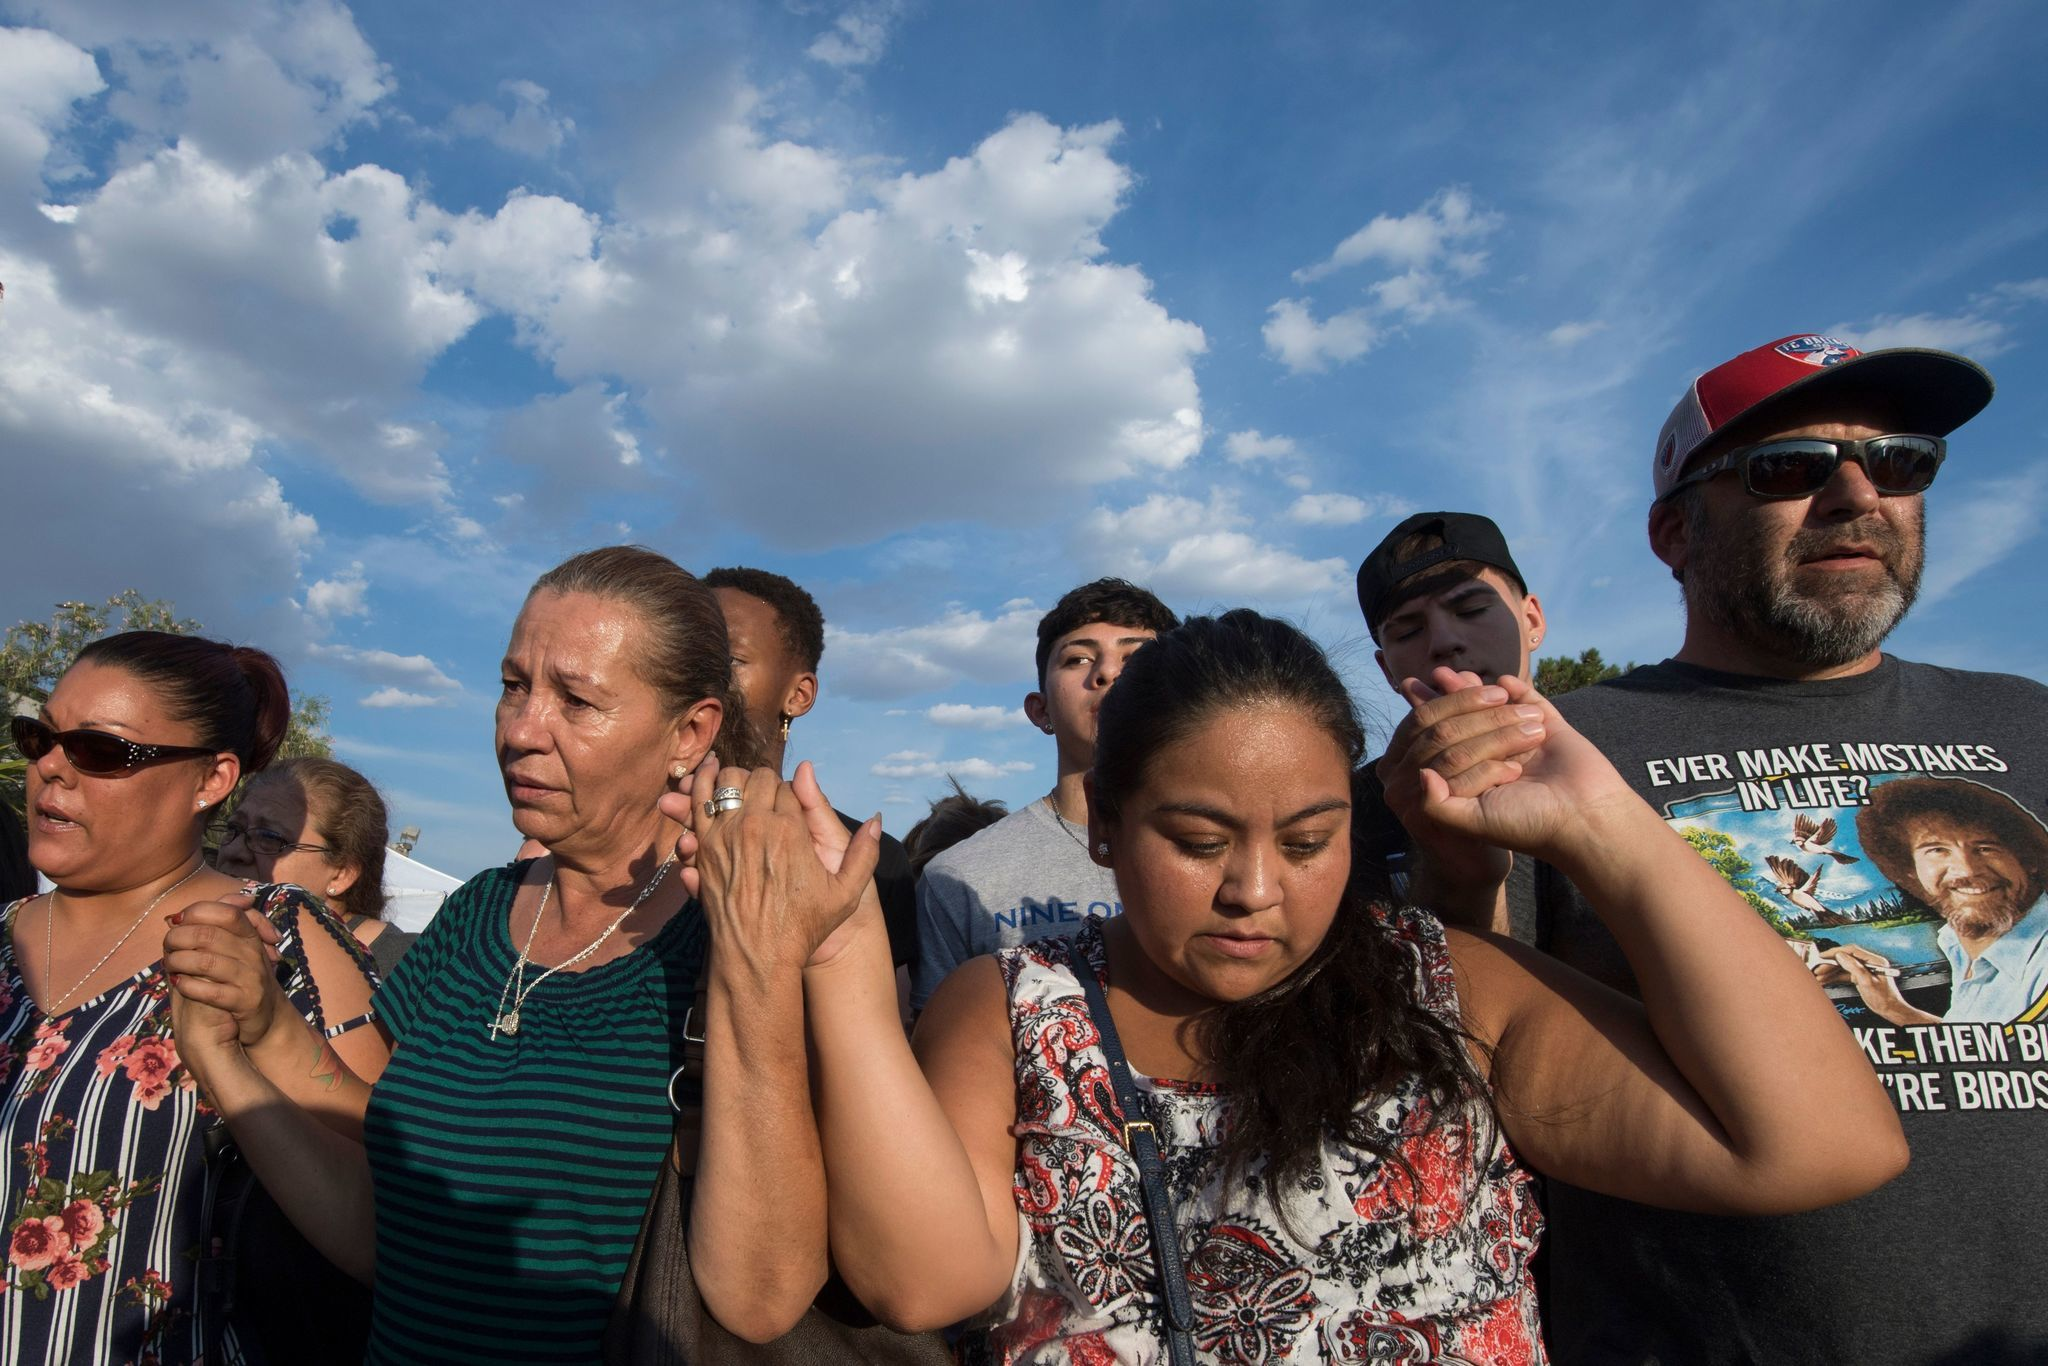 I forgive what he did:' Father of El Paso shooting victim says